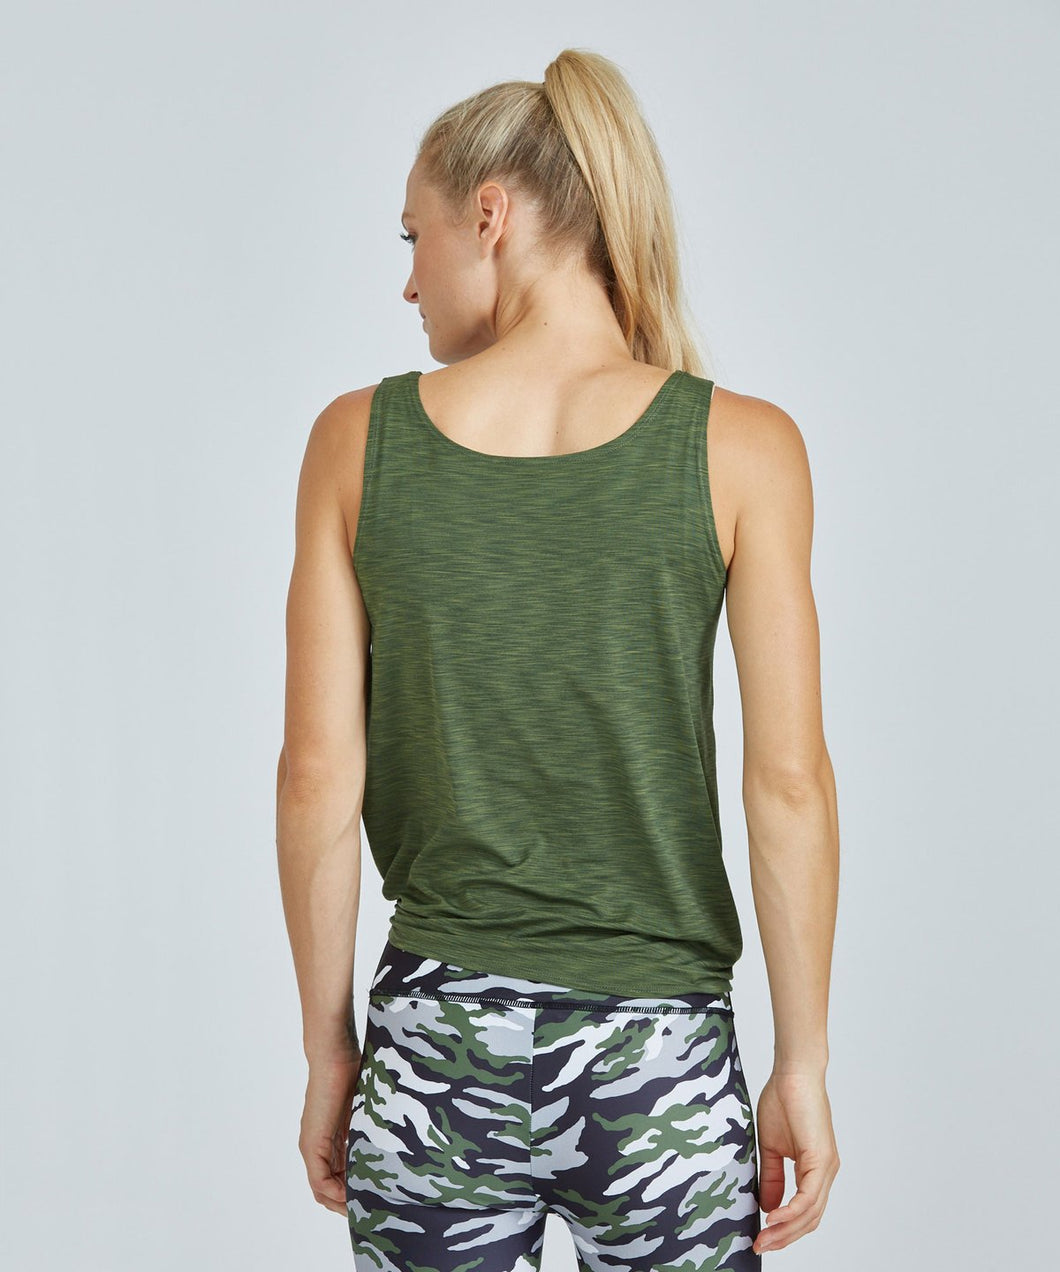 Prism Sport Lucy Top - Olive